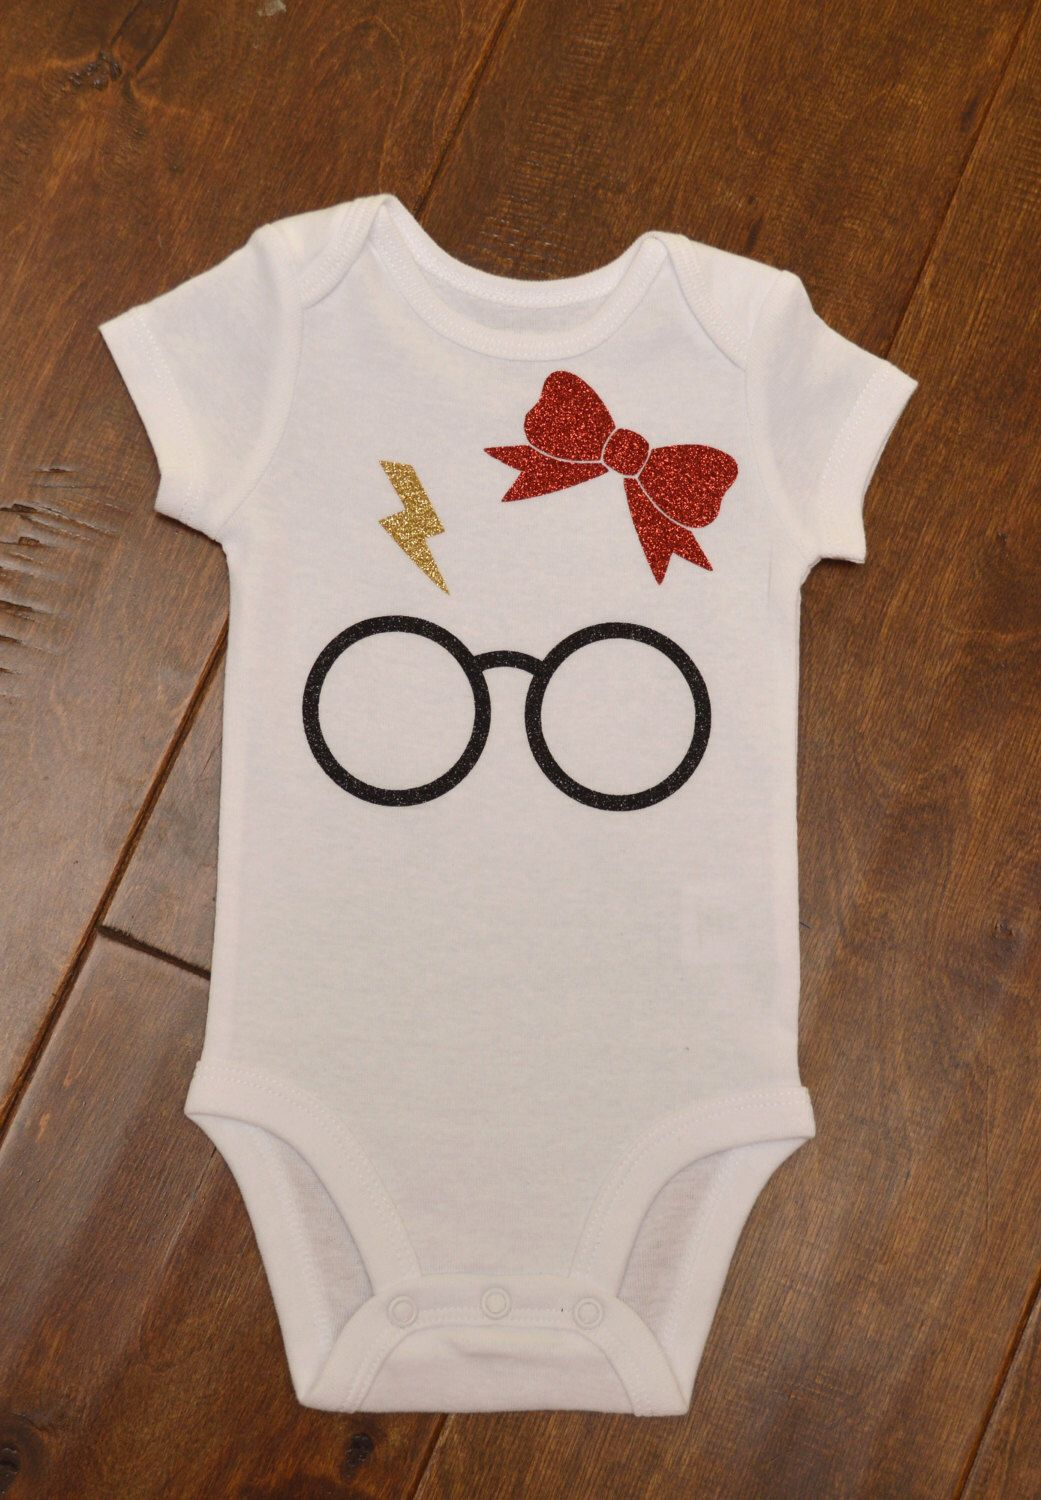 6fd42b4fe128 Baby girl Harry Potter baby bodysuit by MandiJDesigns on Etsy https://www.